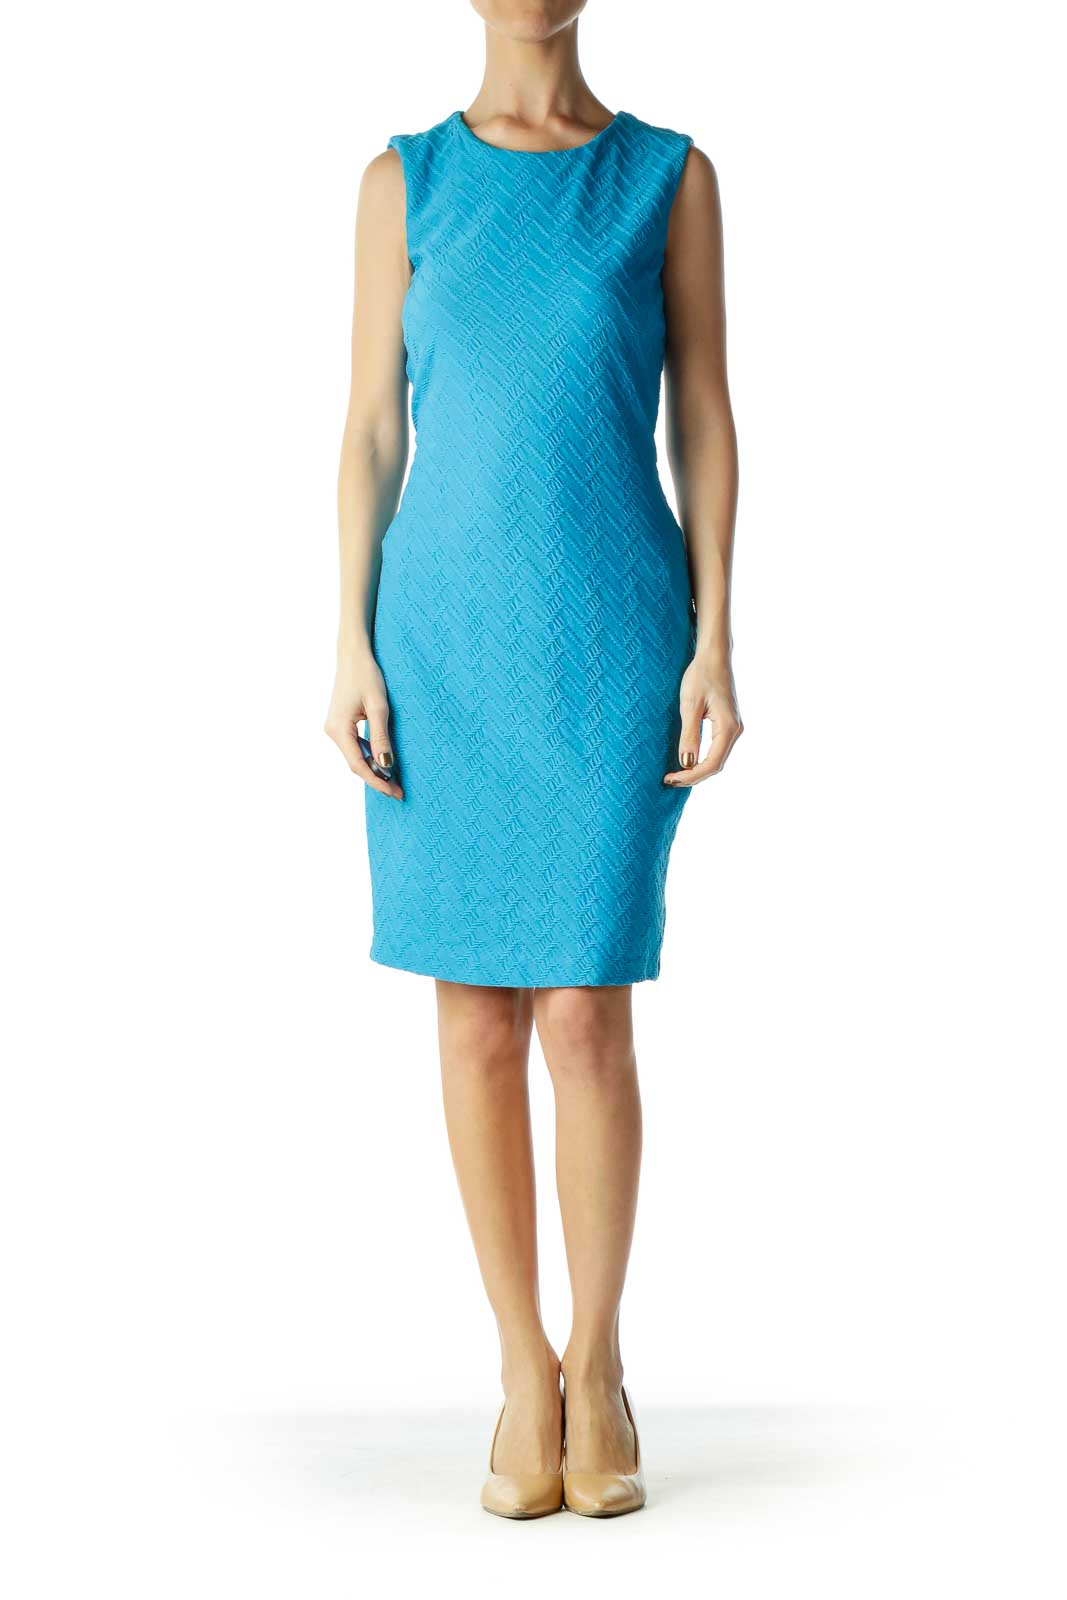 Blue Textured Sleeveless Bodycon Dress